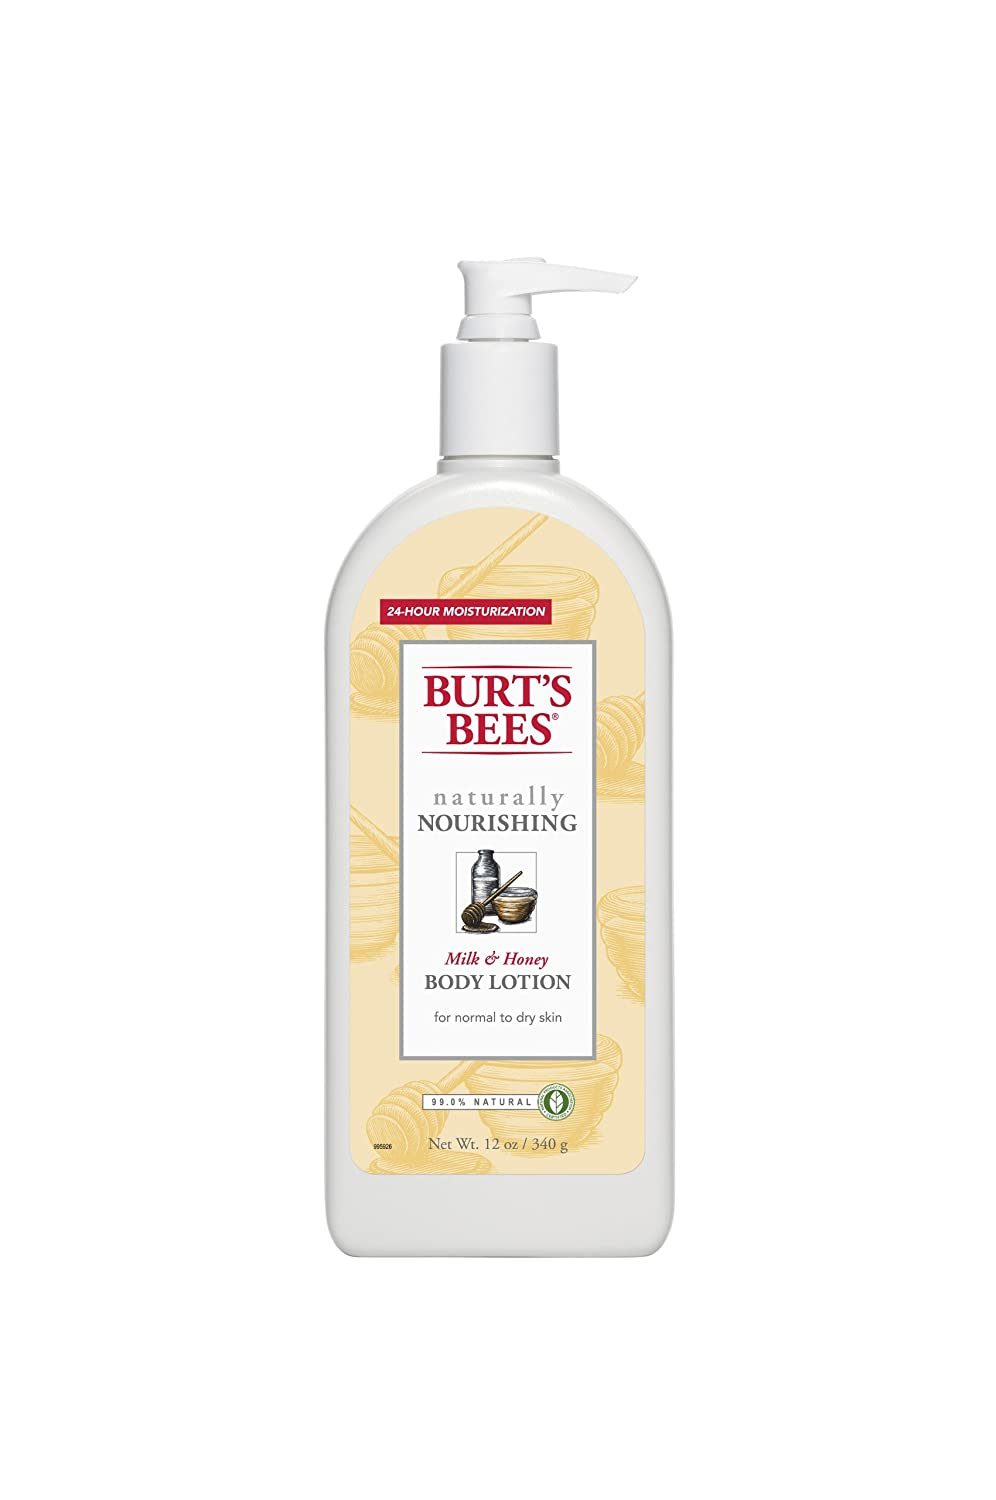 Burt's Bees 小蜜蜂 Body Lotion 身体乳